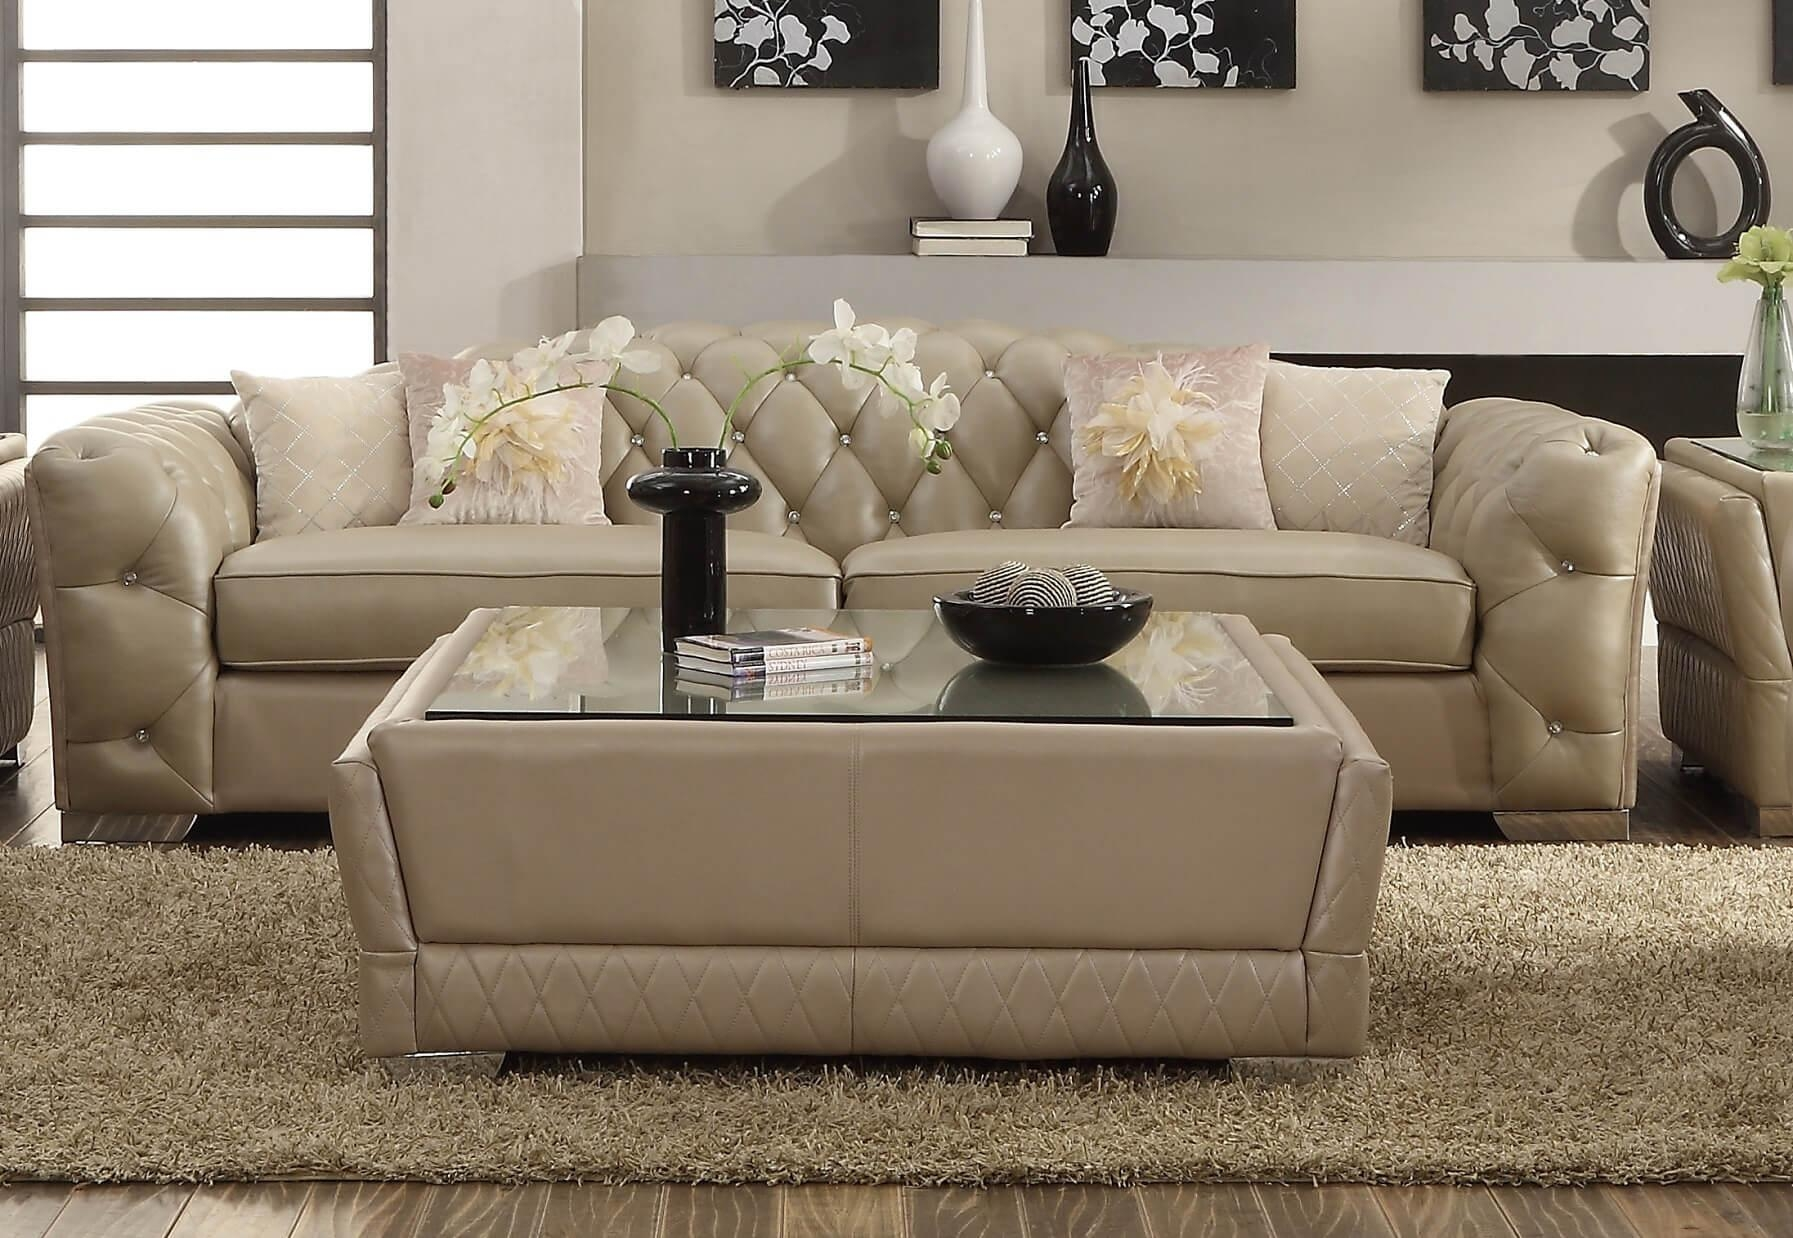 Living Room Furniture Ivory Sofa 2018 Latest Ivory Leather Sofas Sofa Ideas